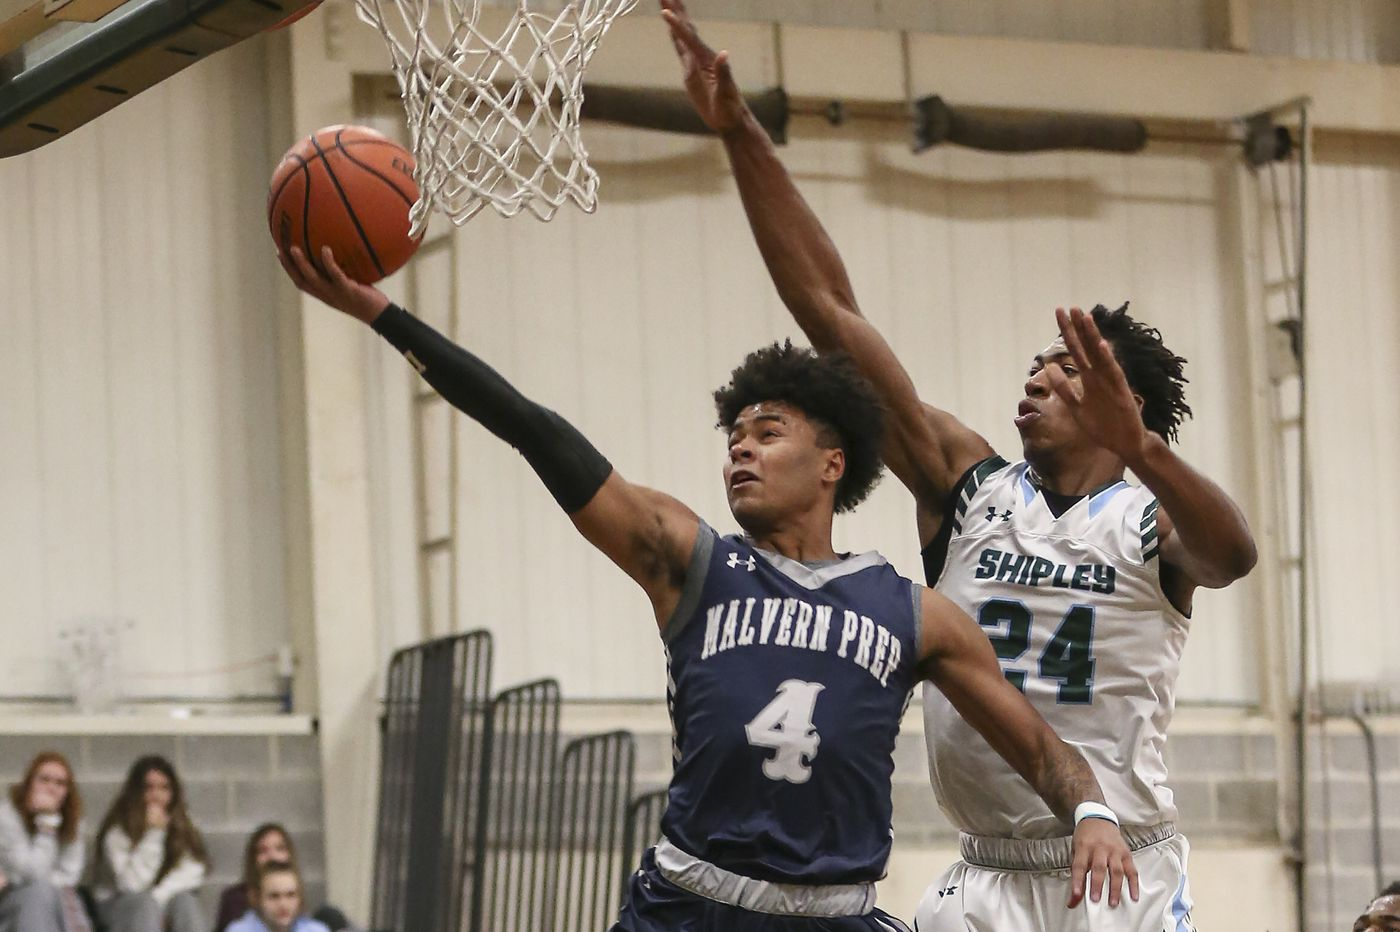 Malvern Prep's Deuce Turner is Class 5A state boys' basketball player of year